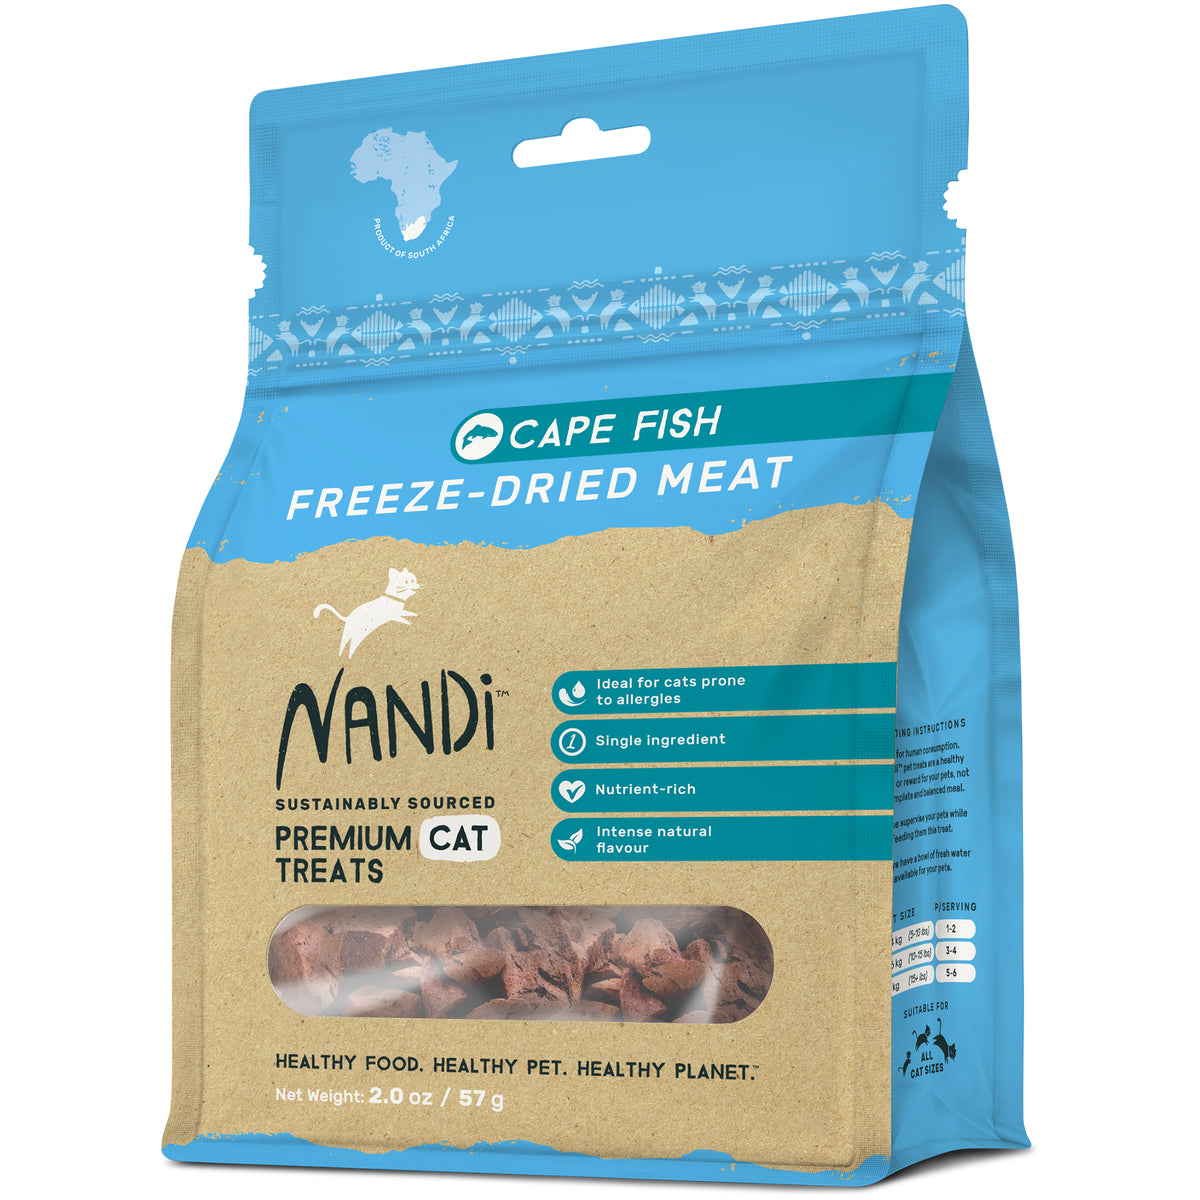 Nandi Freeze Dried Meat Cat Treats -Cape Fish - (57g)